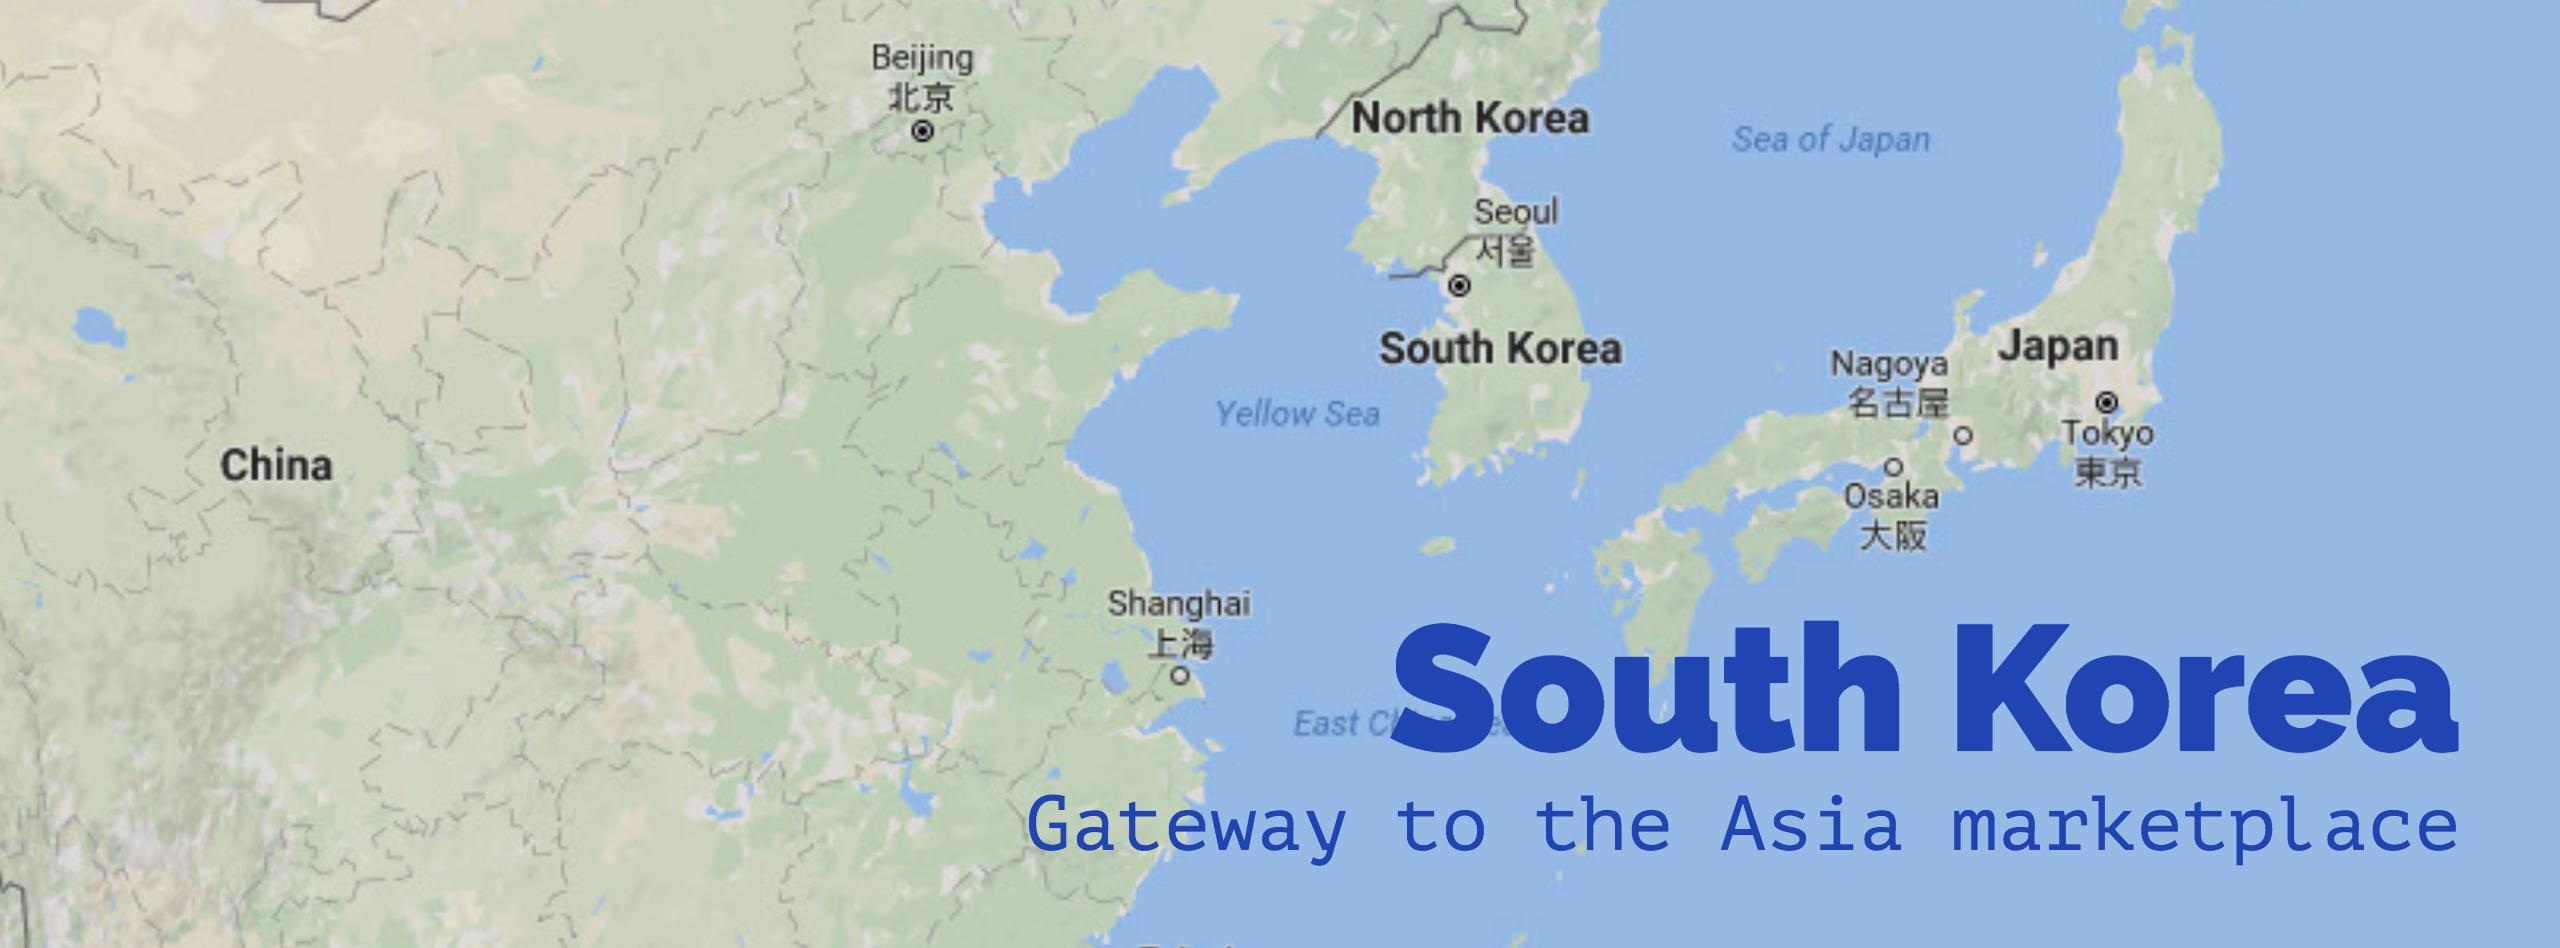 Go Global, Business trip to South Korea scheduled for April 2017, South Korea, Gateway to the Asia marketplace